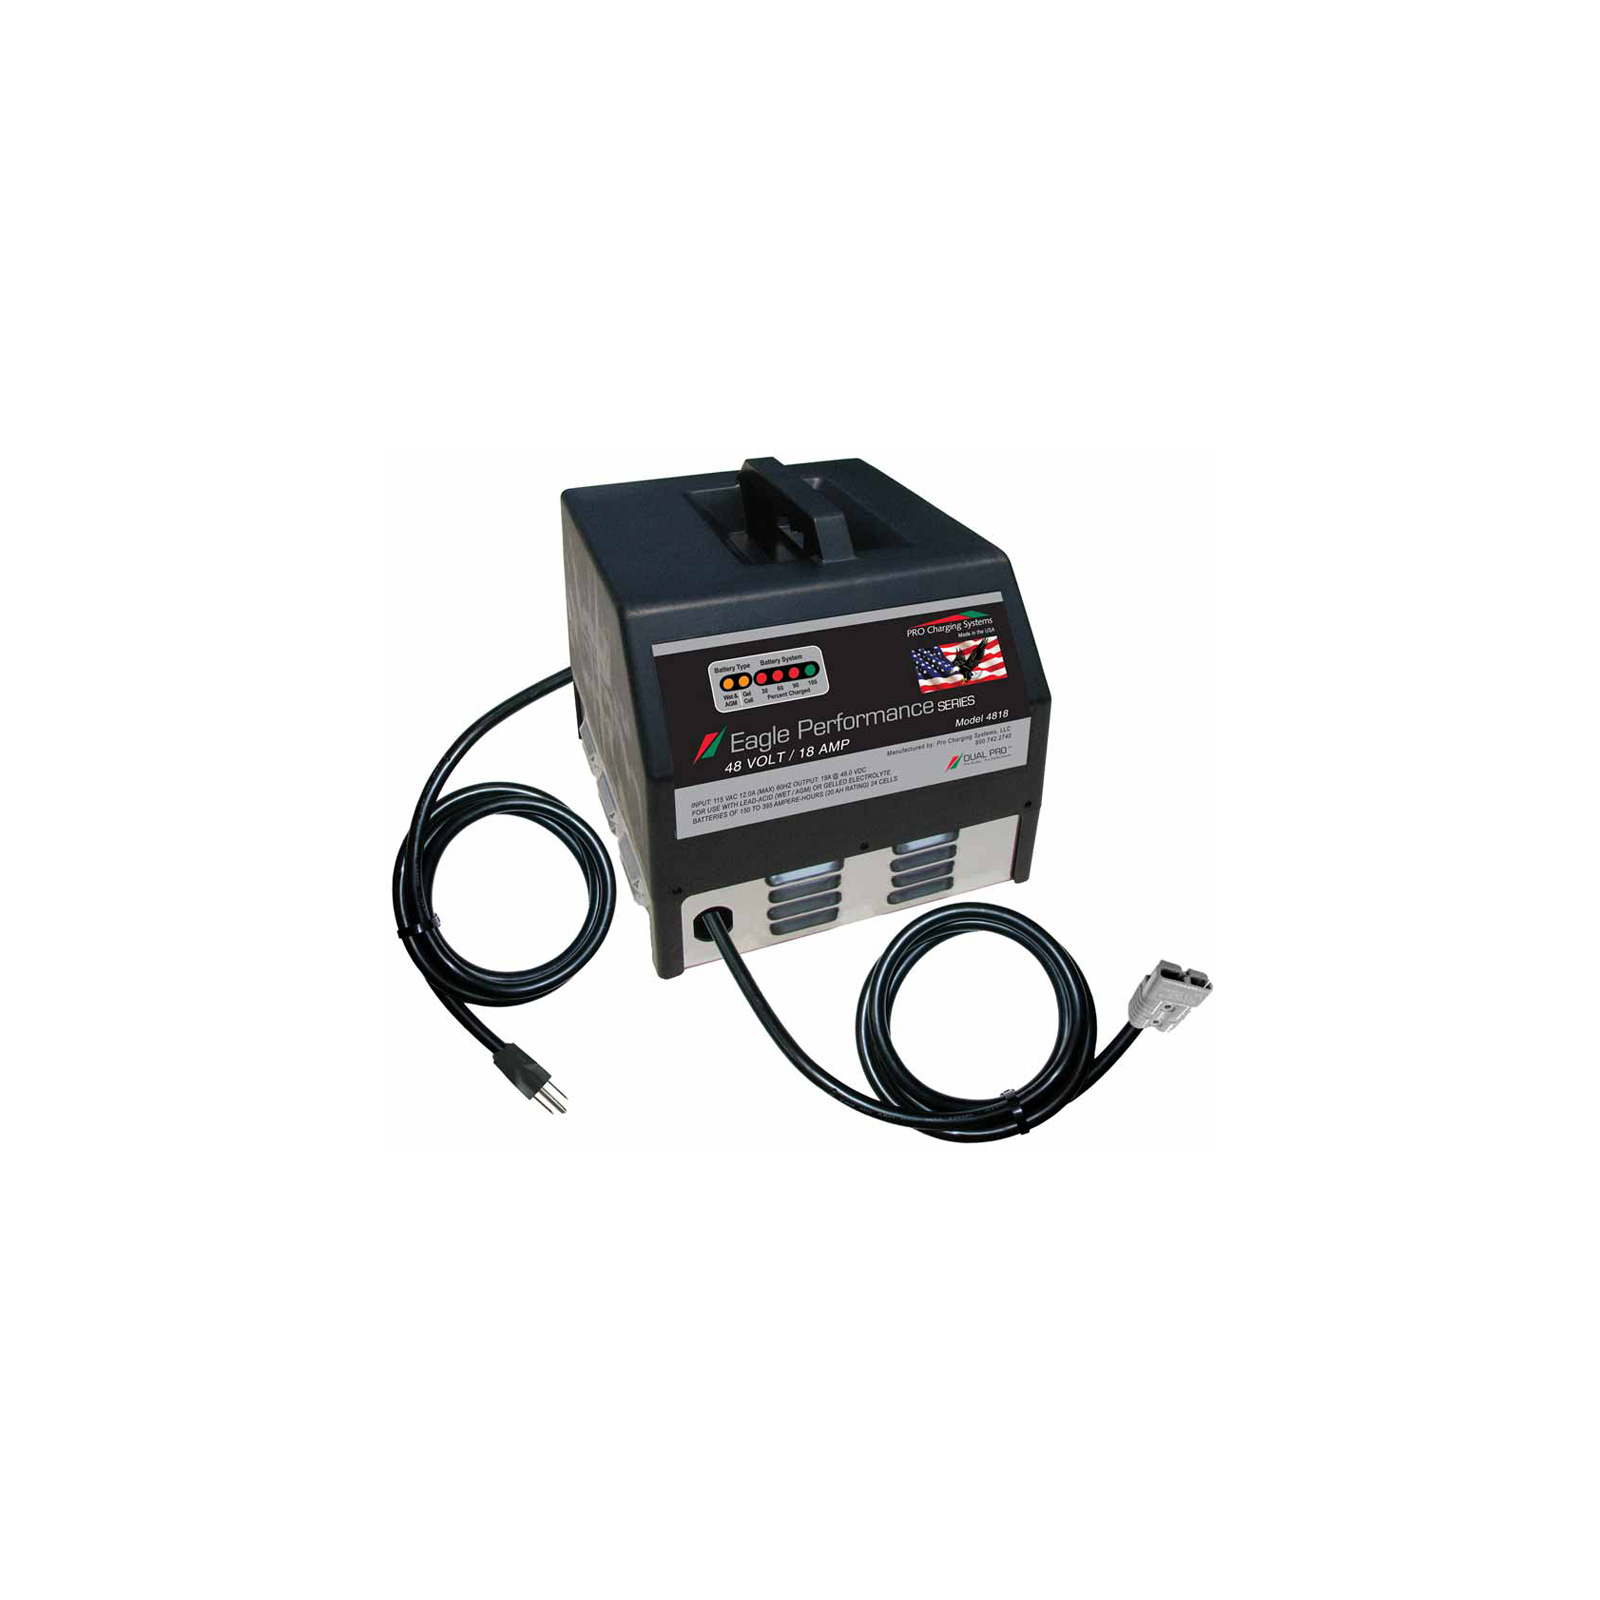 PRO Charging System i1225 Eagle Performance Series E.P.S. 40158 25A per output